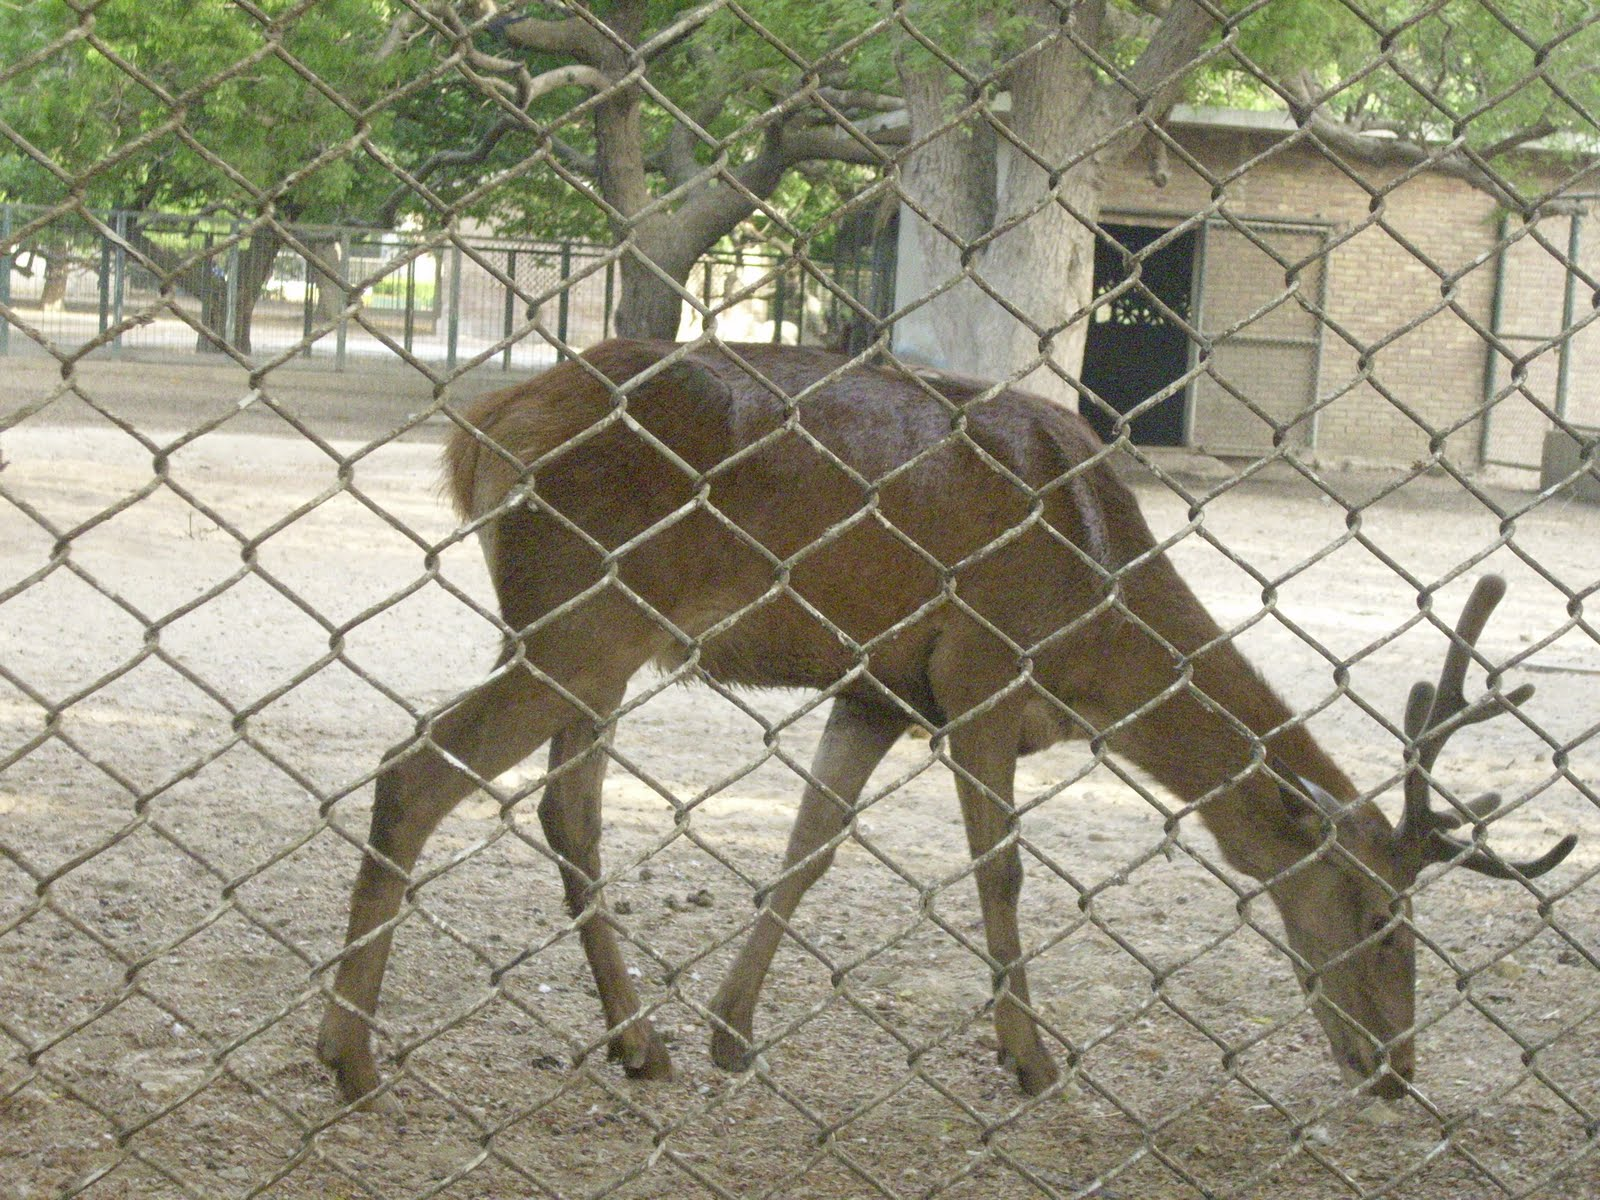 People All Over The Pakistan Come And Visit This Zoo. We Find Different  Families Of Karachi As Well As From Interior Sindh And Other Places Who  Enjoy Their ...